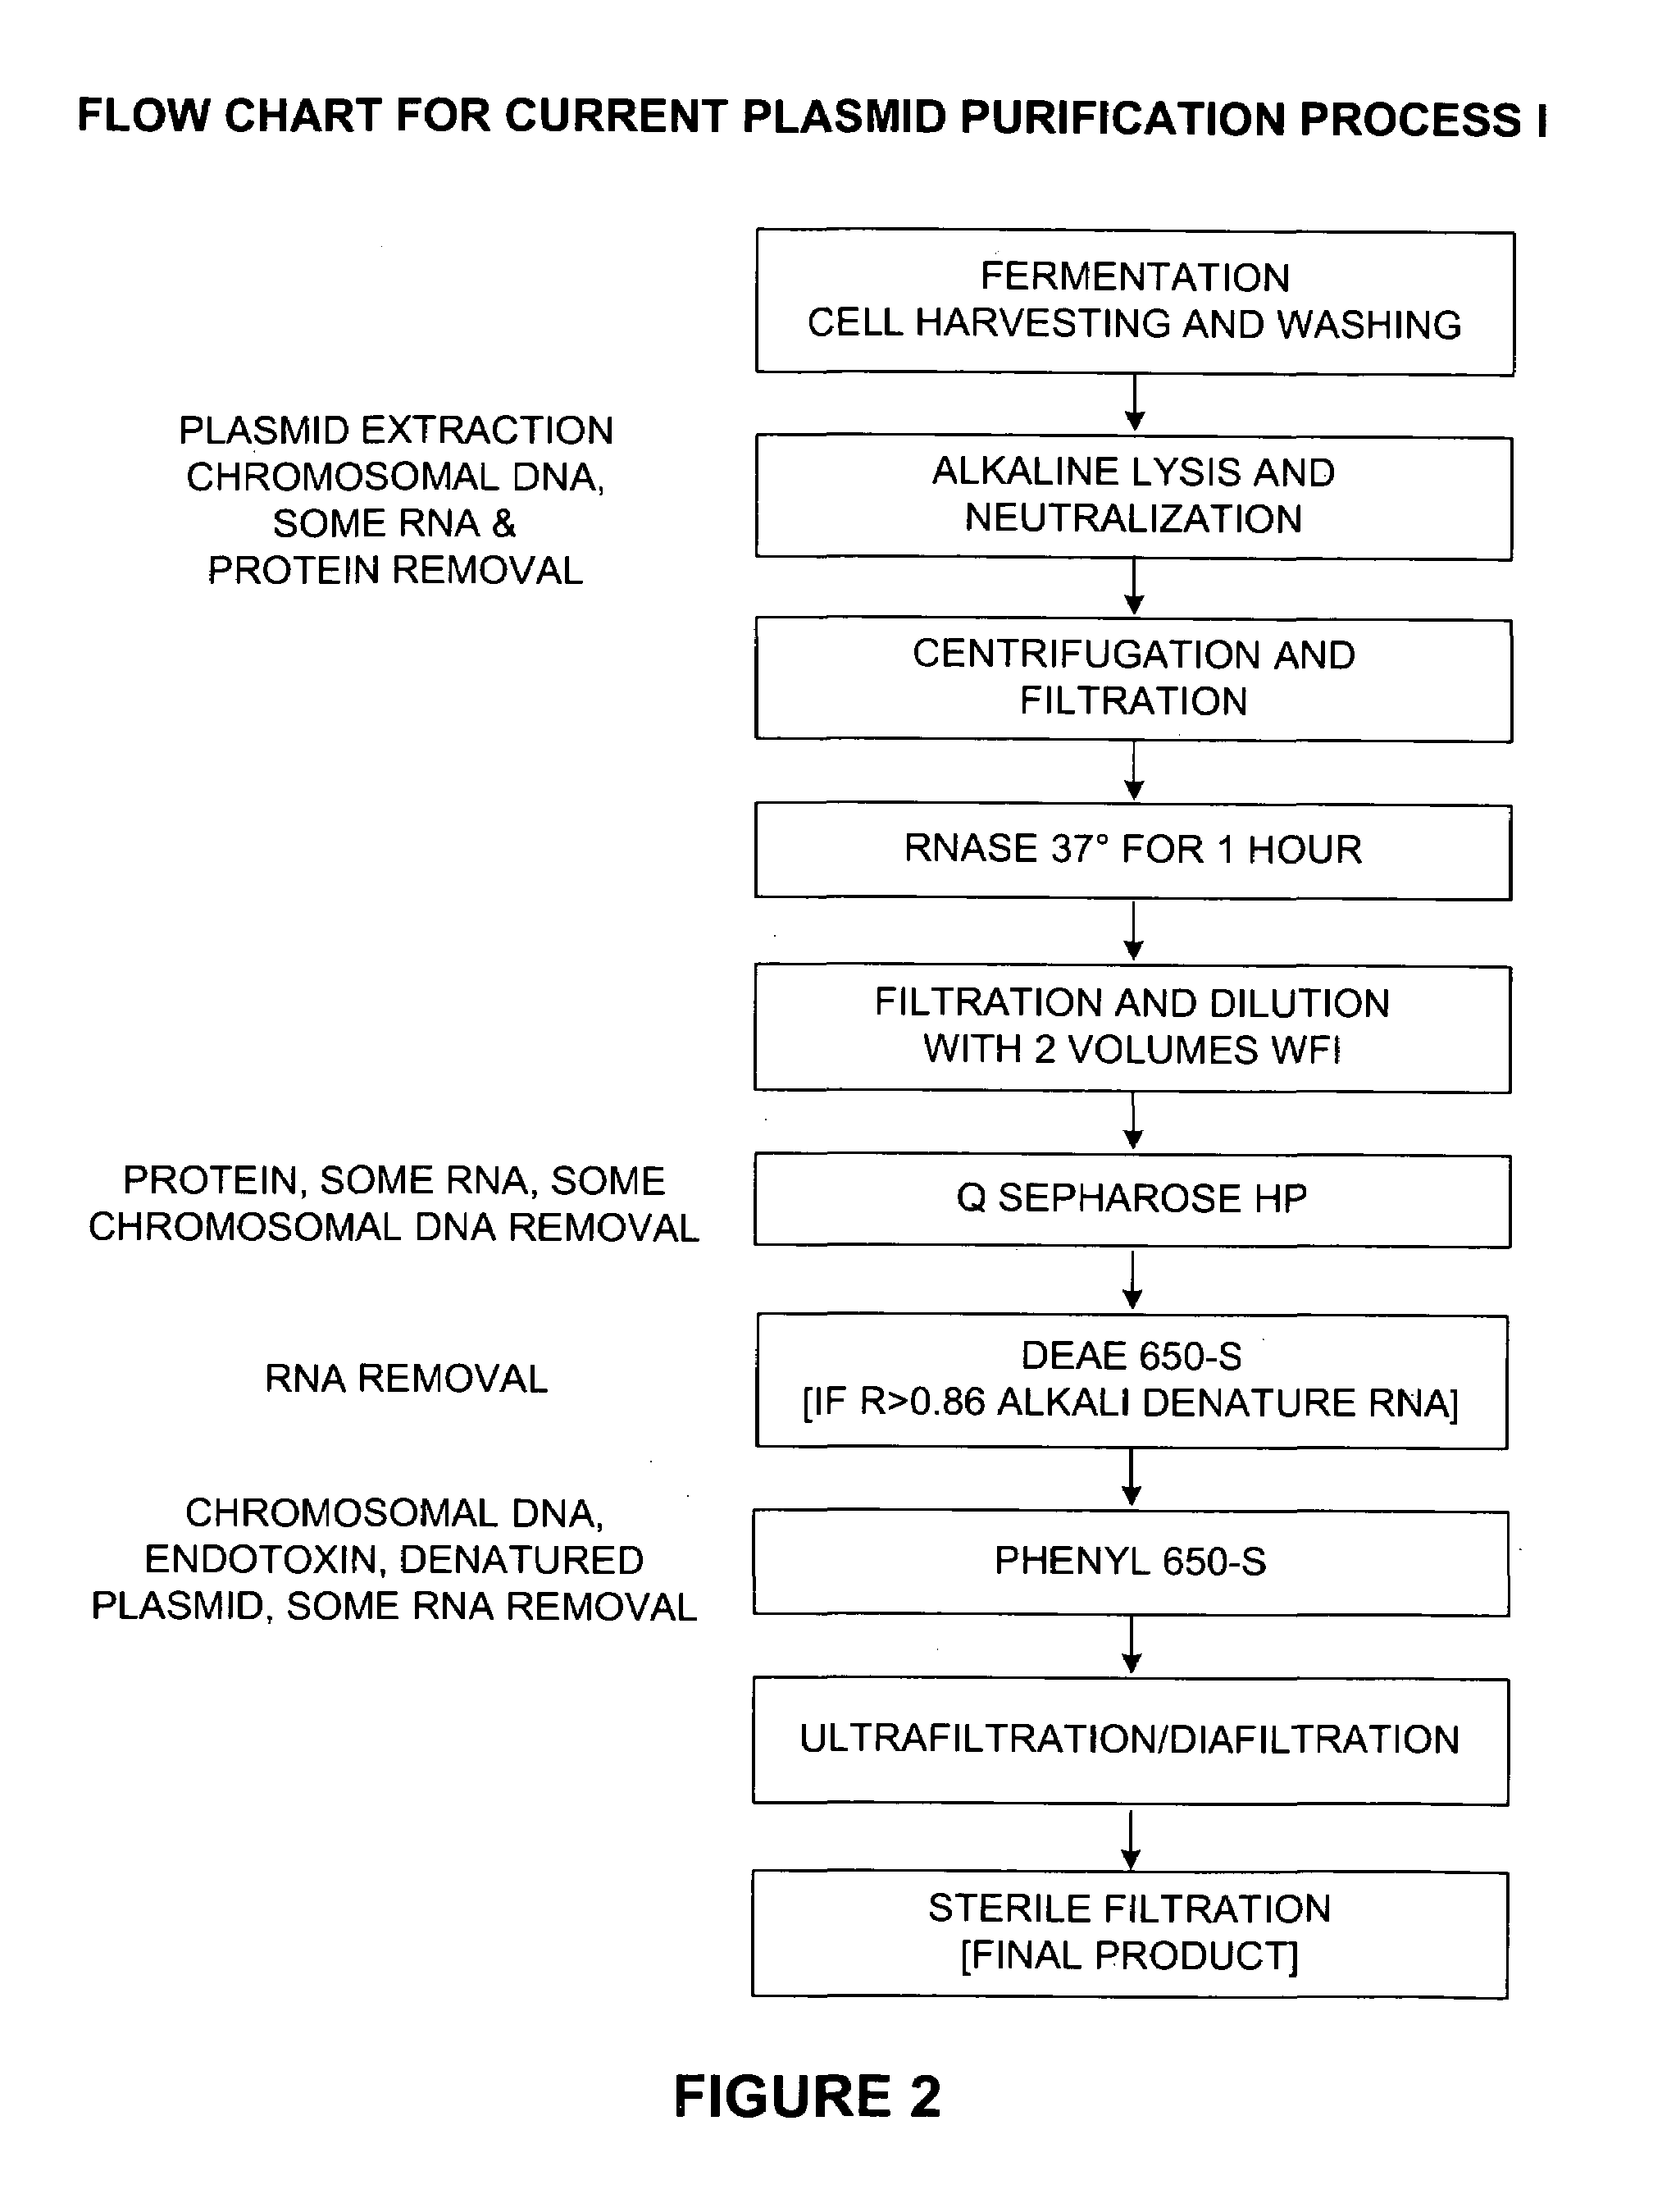 Patent Us7026468 Process And Equipment For Plasmid Purification Flow Diagram R Drawing